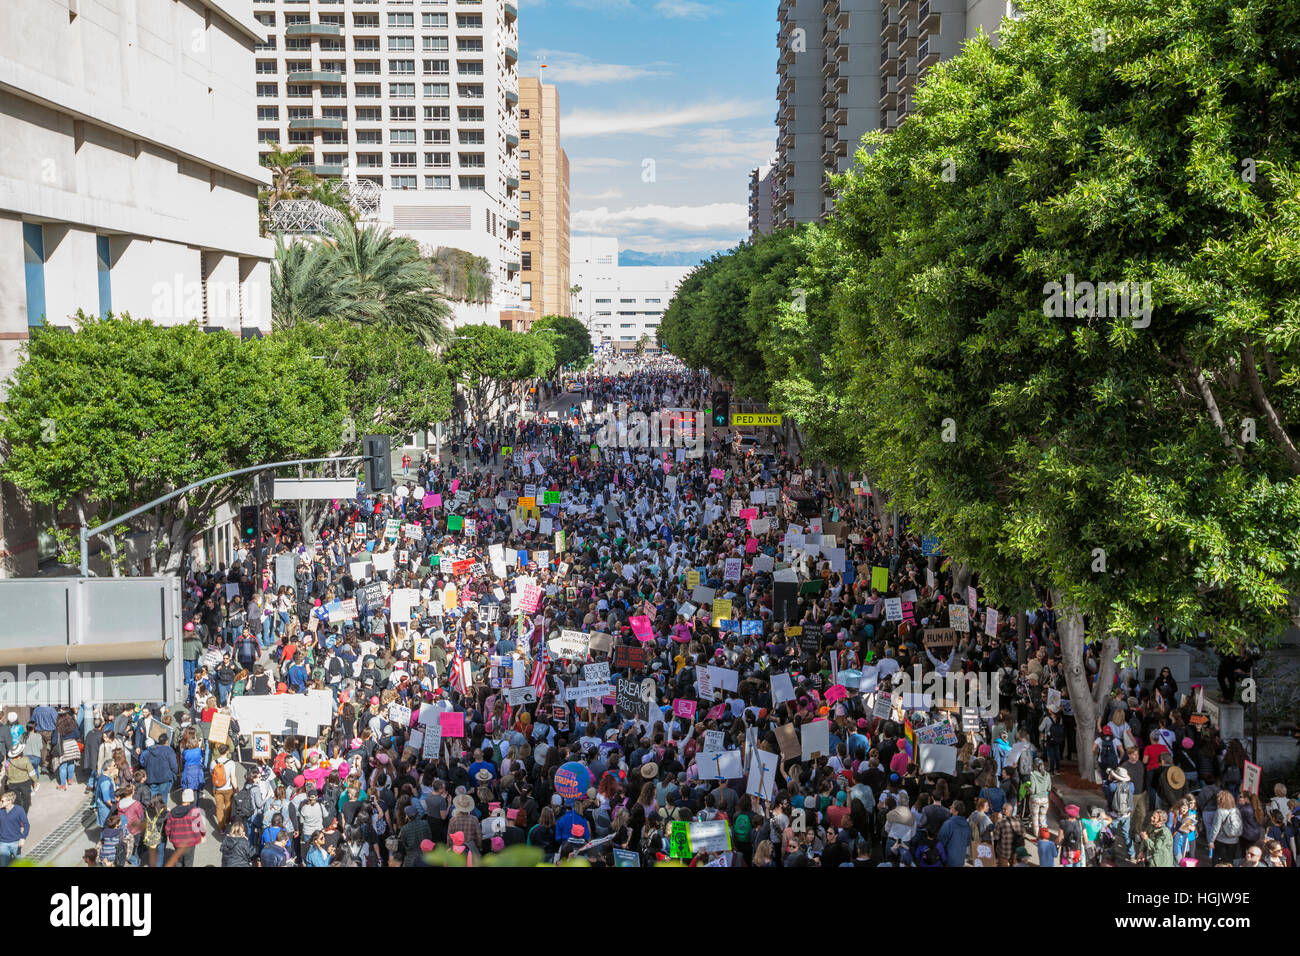 Los Angeles, USA. 21st Jan, 2017. 5th St at Olive, Women's March in Los Angeles. Credit: Kayte Deioma/Alamy Live Stock Foto